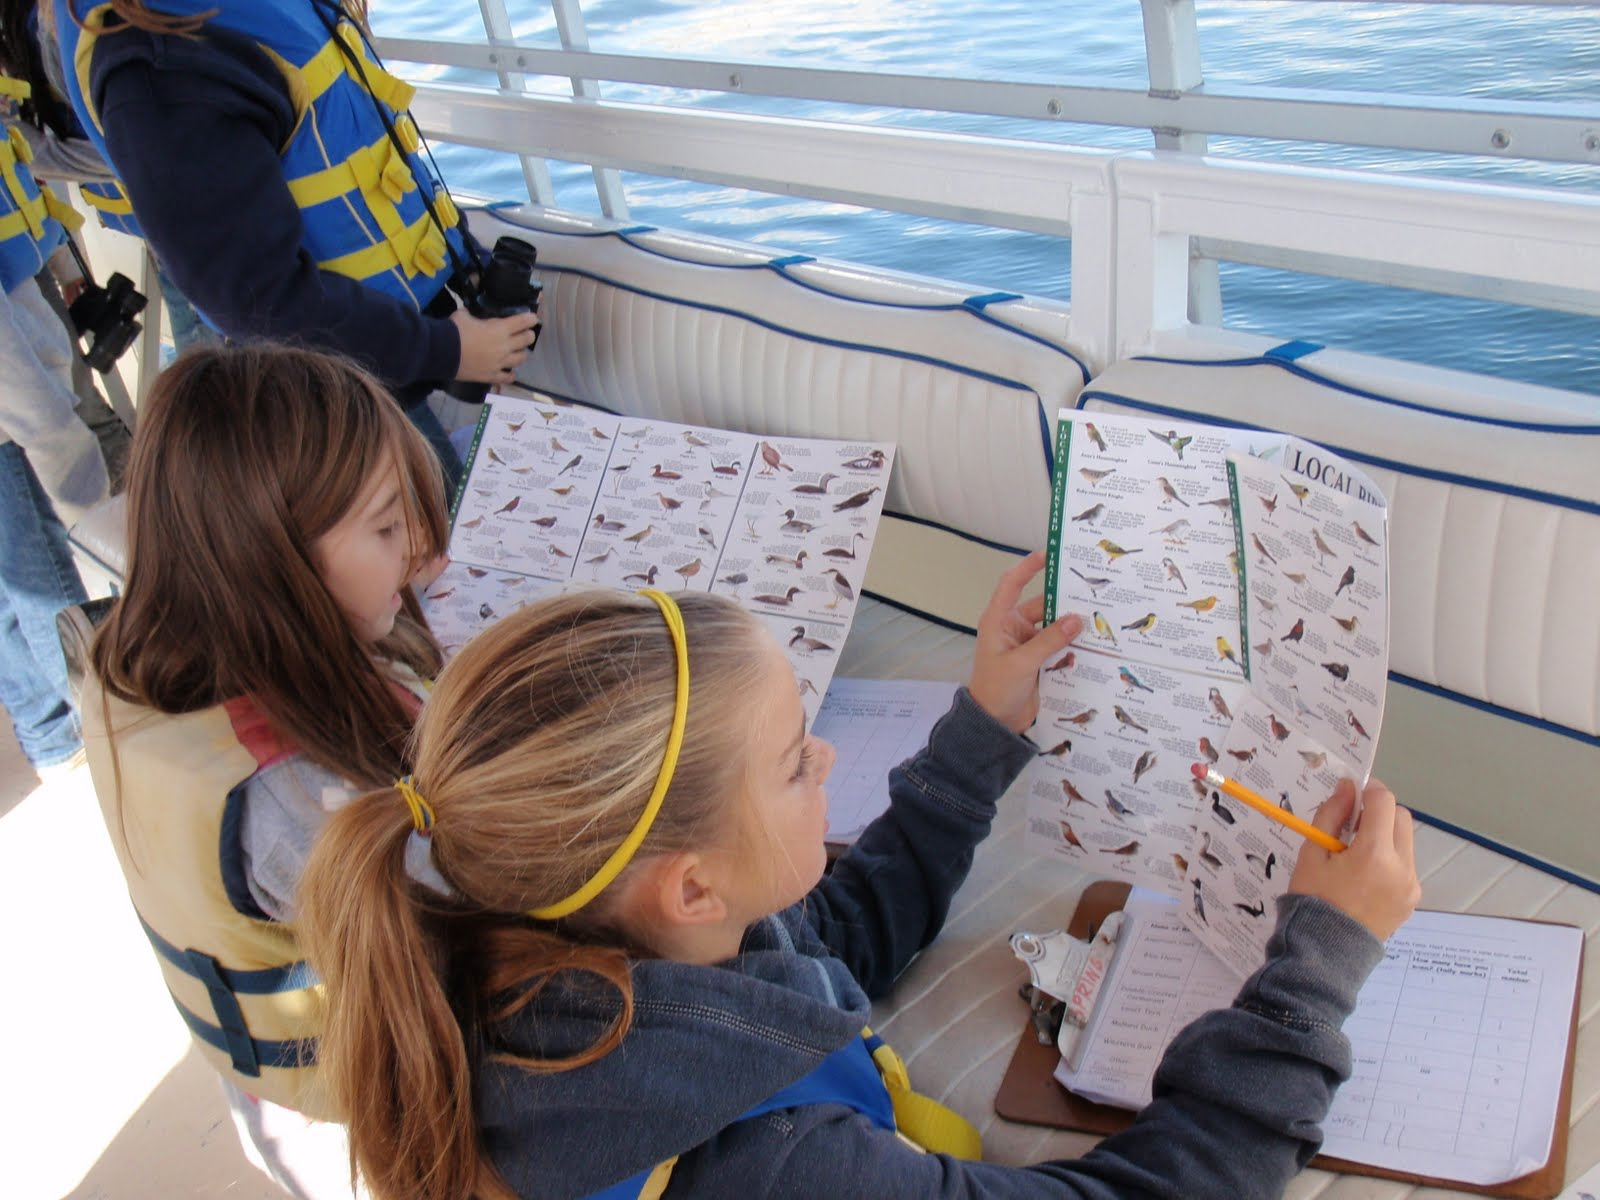 Girls on pontoon with bird charts.jpg